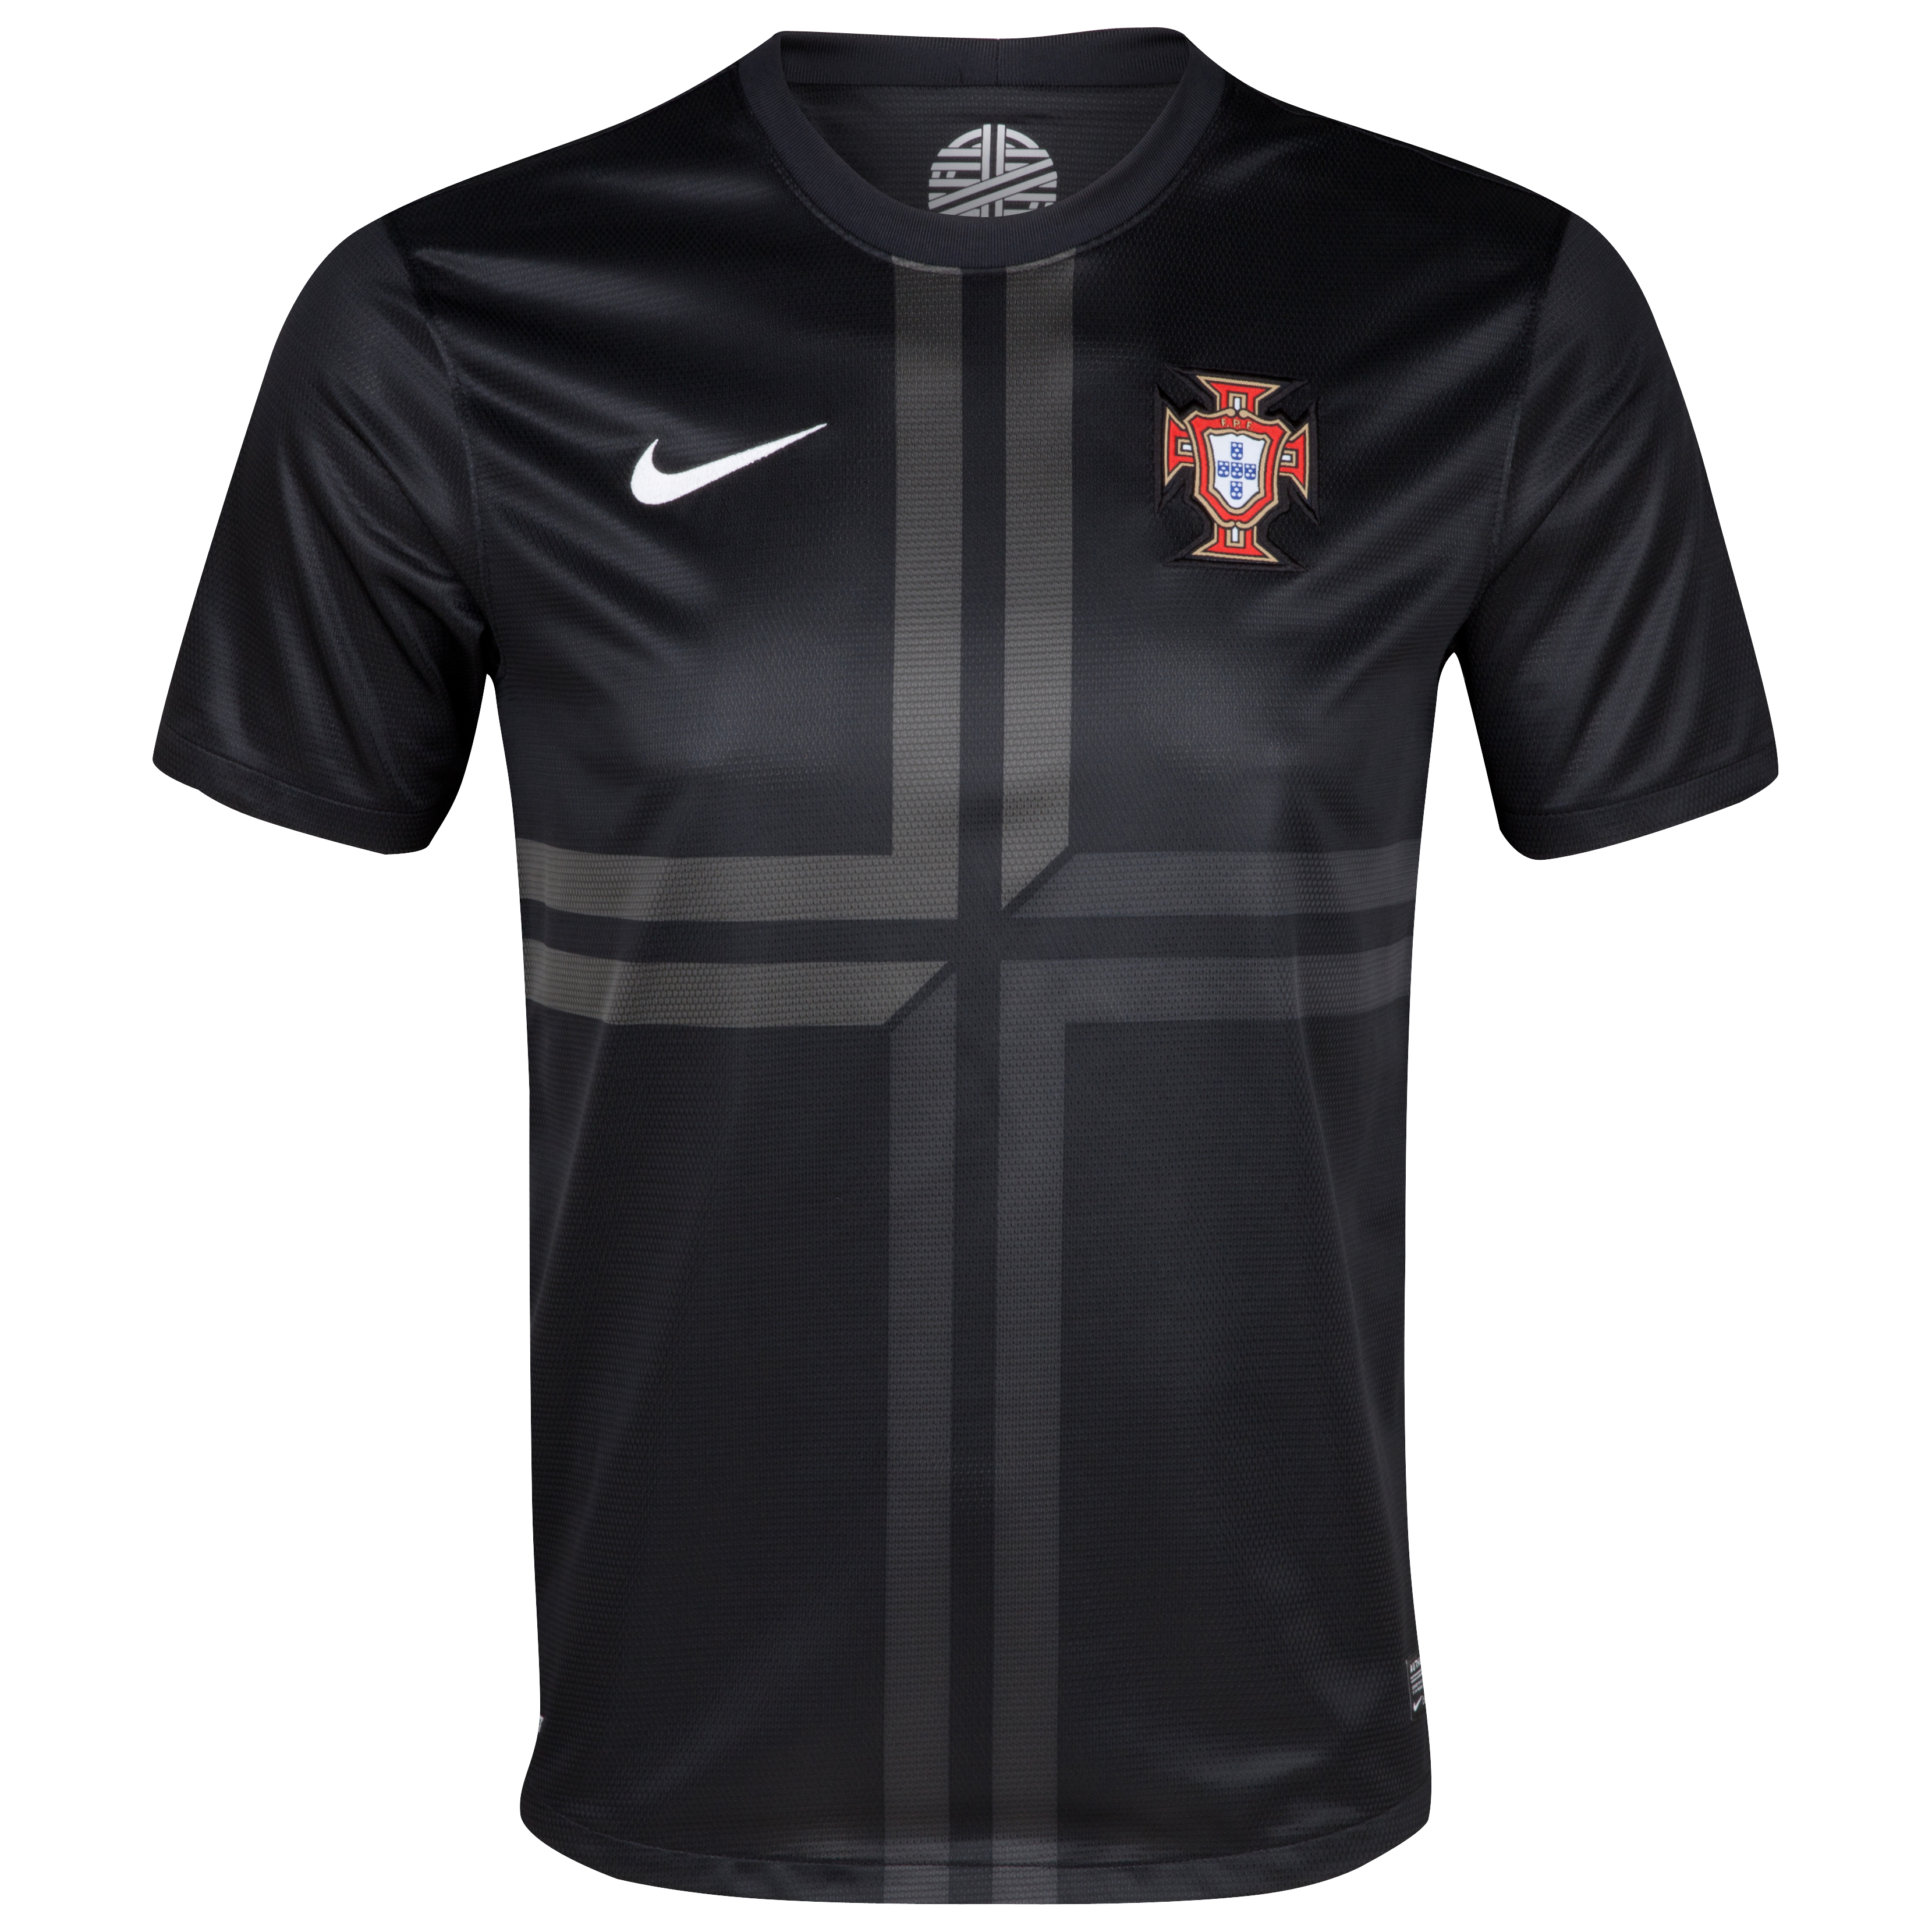 Portugal Away Shirt 2013/14 Youths